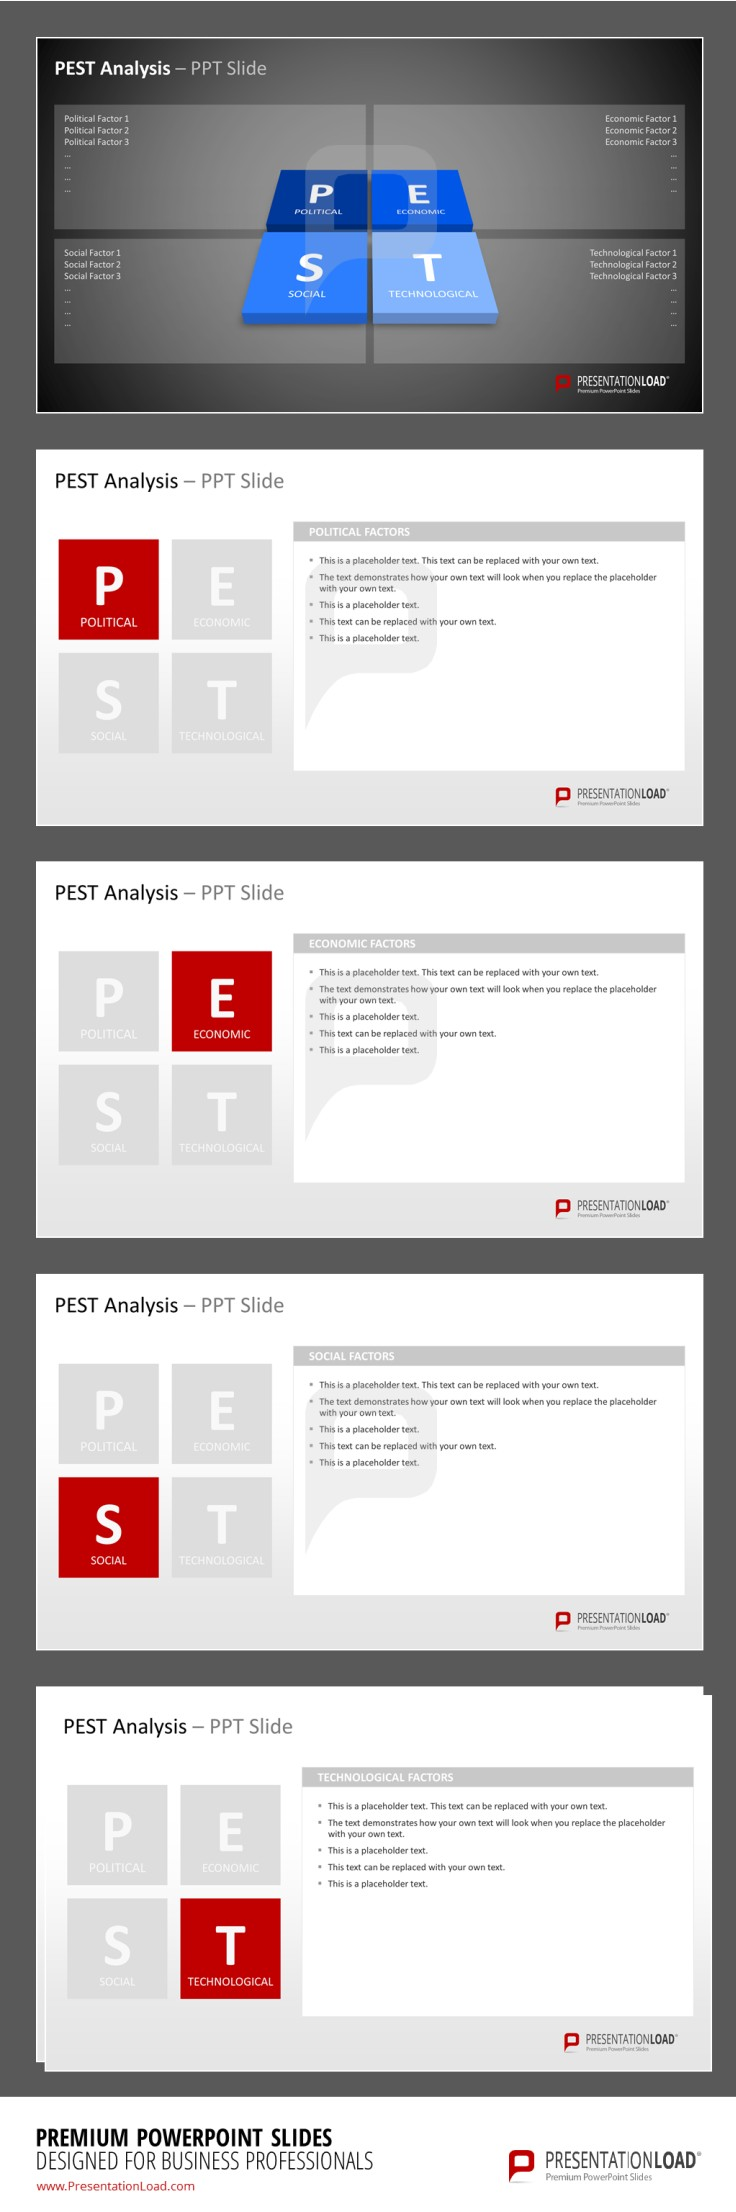 pest analysis powerpoint template the basic pest analysis includes